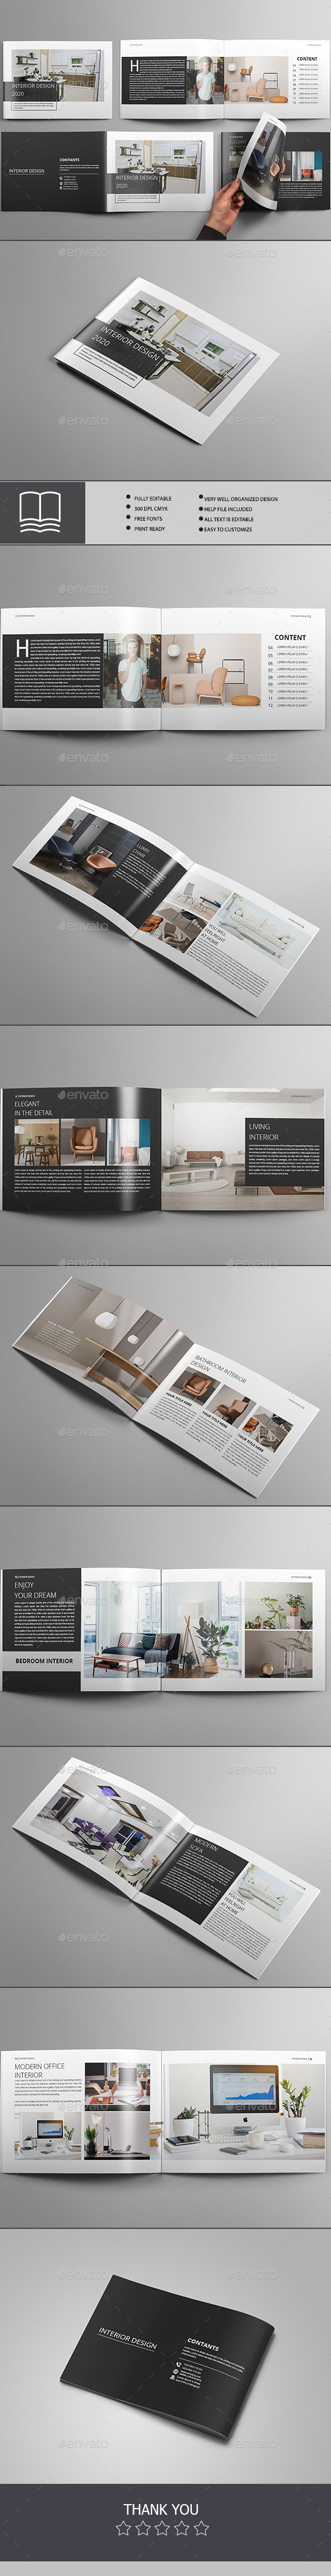 A5 Interior Design by PointDng GraphicRiver